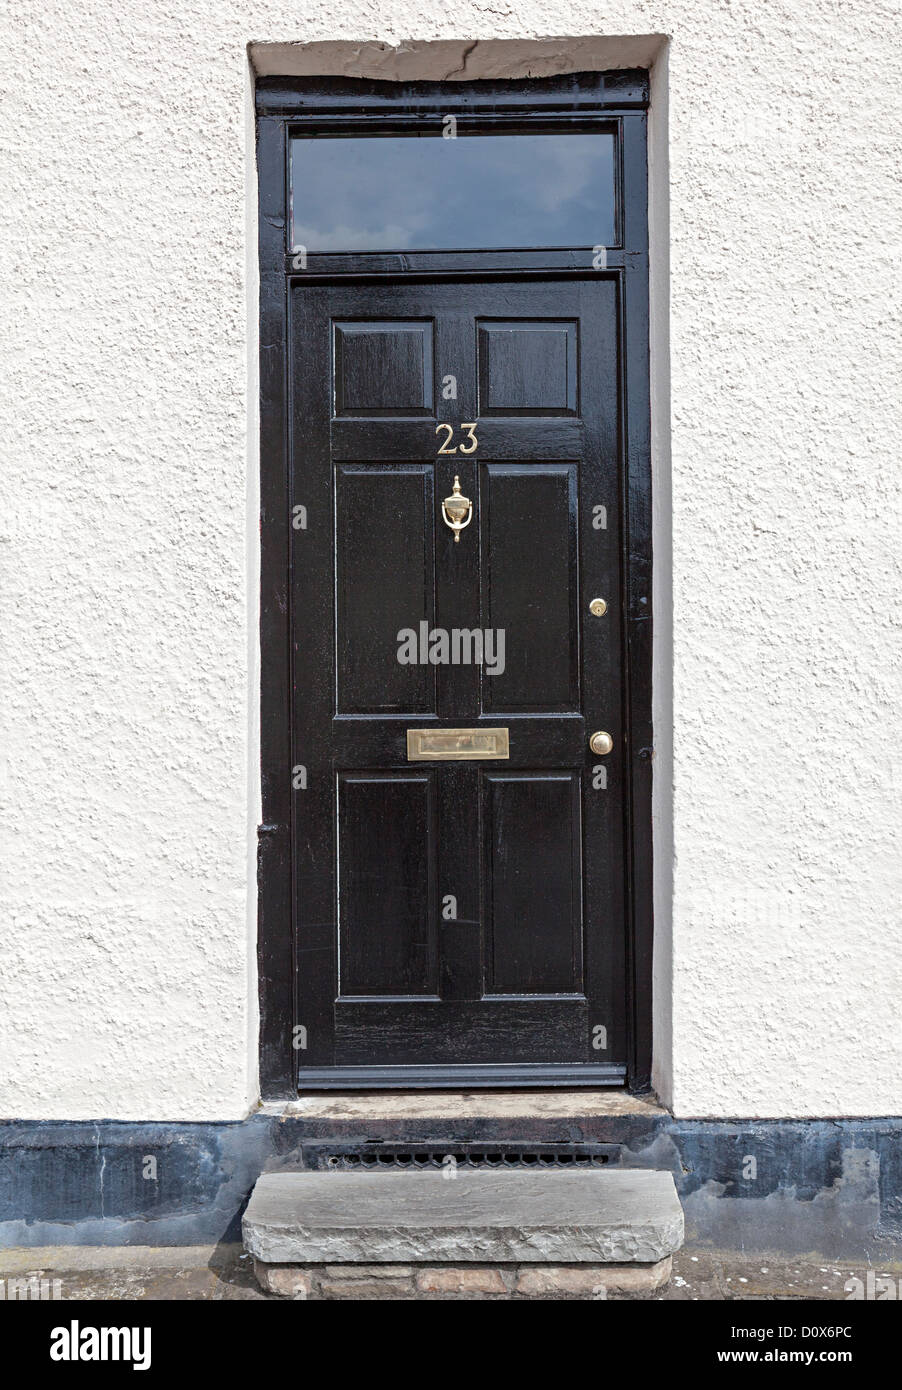 Black house door with number 23 opening directly onto street, Wales, UK - Stock Image